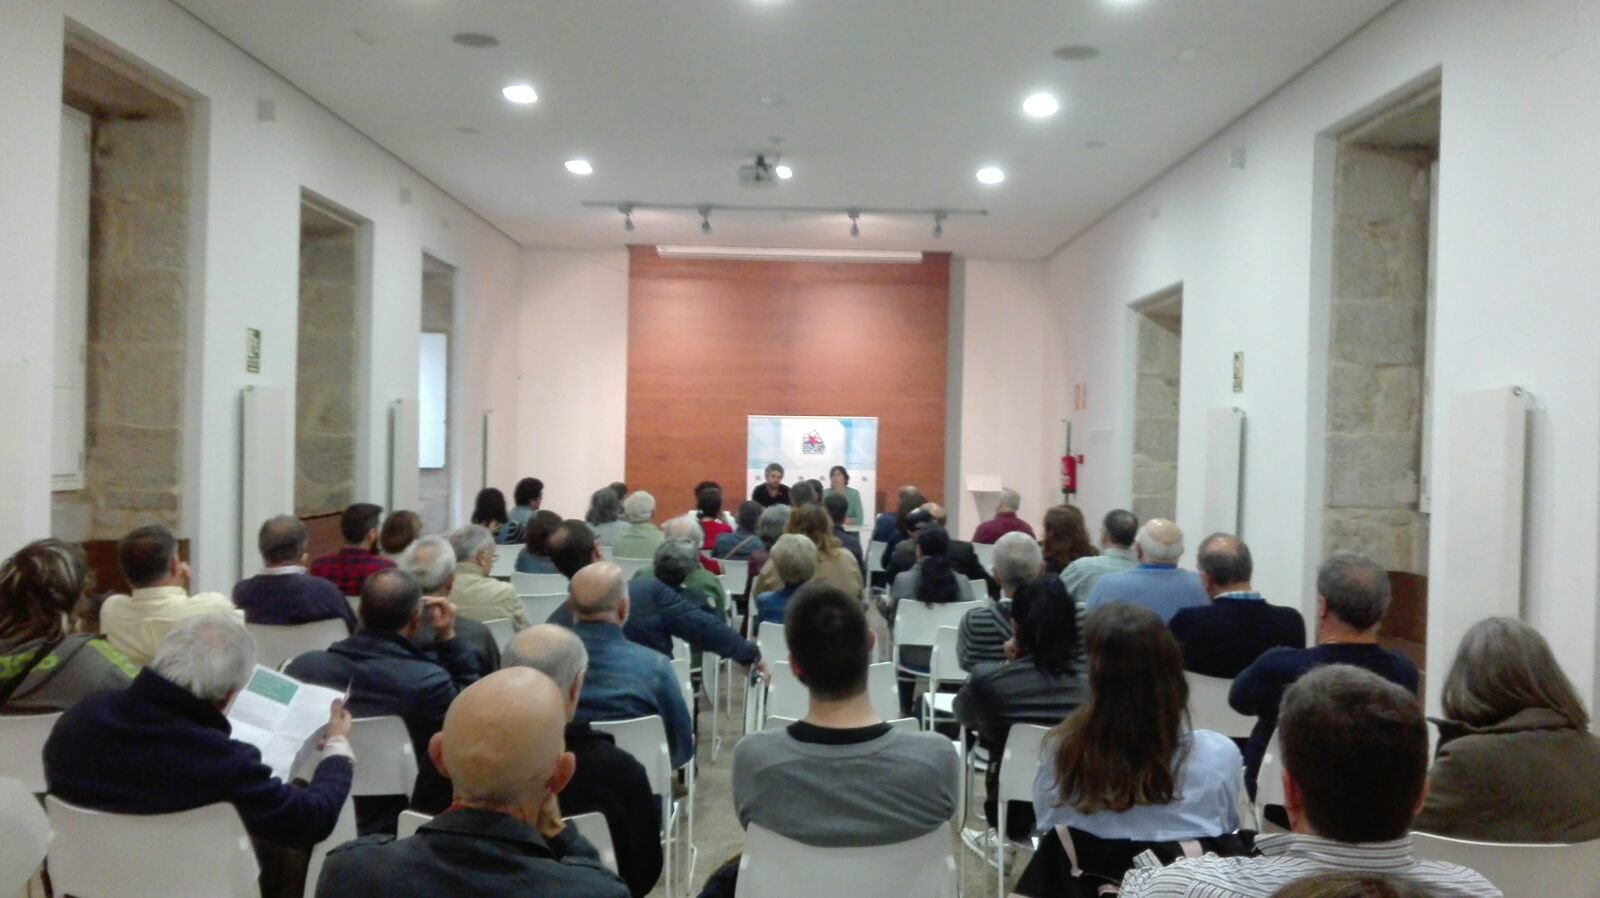 Foto do @bngferrol do acto sobre financiamento